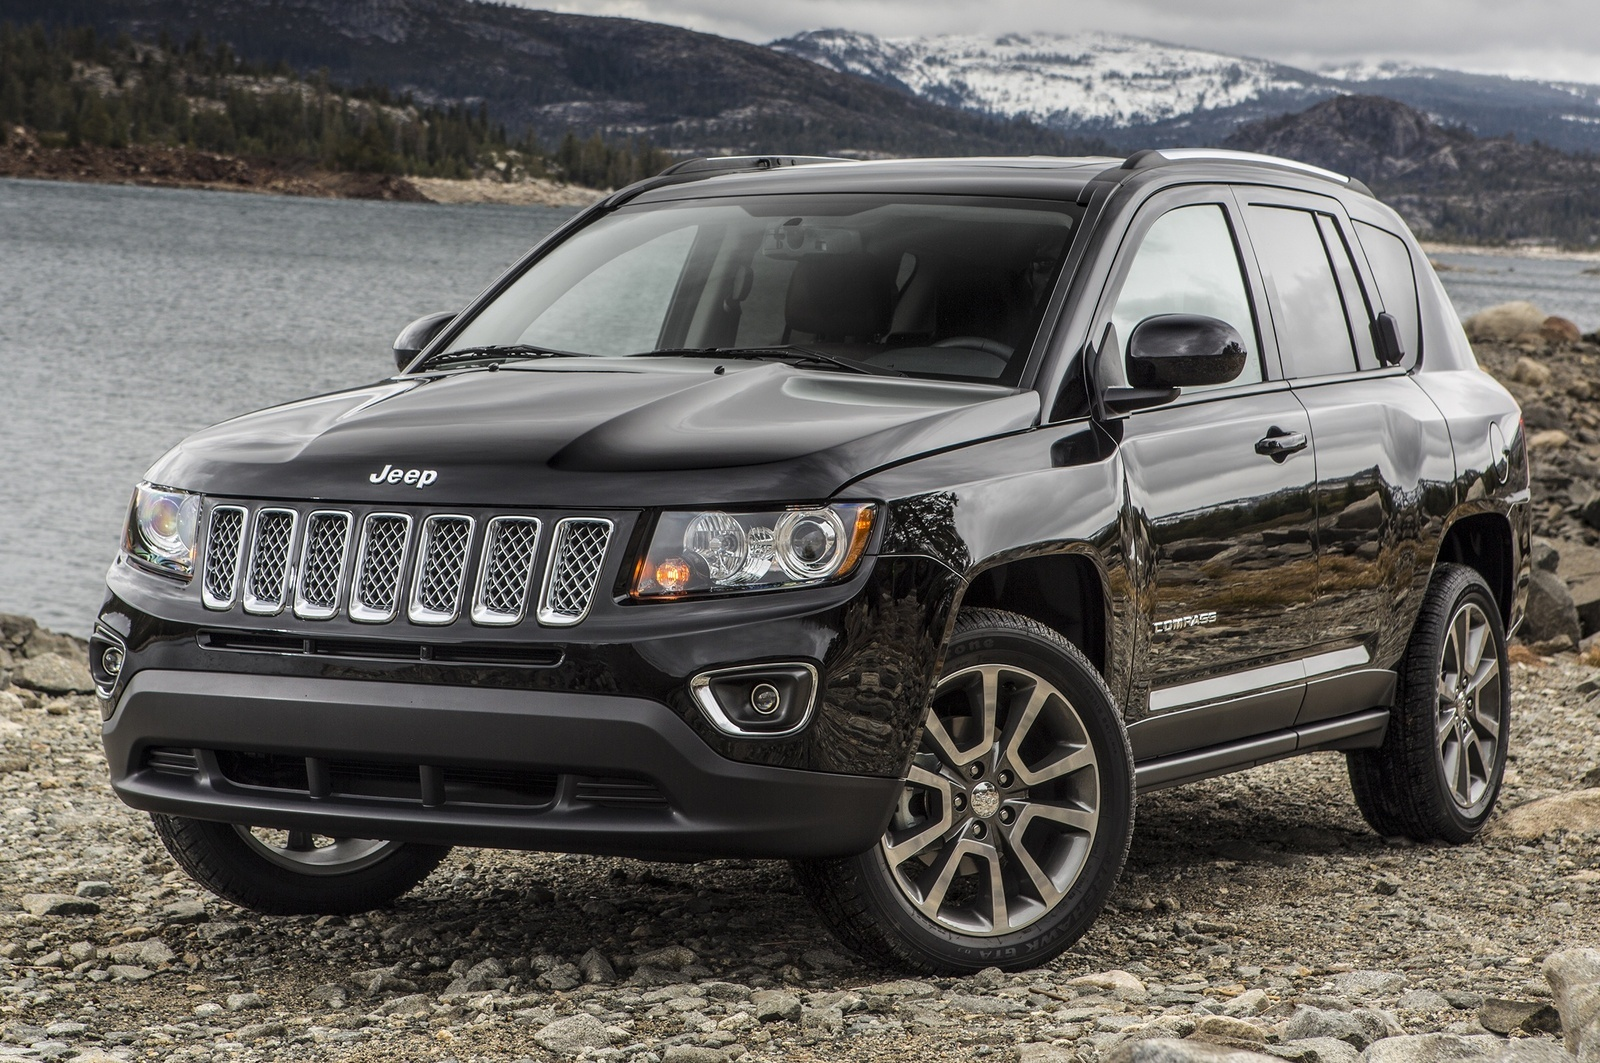 2015_jeep_compass-pic-5816040525679992237-1600x1200